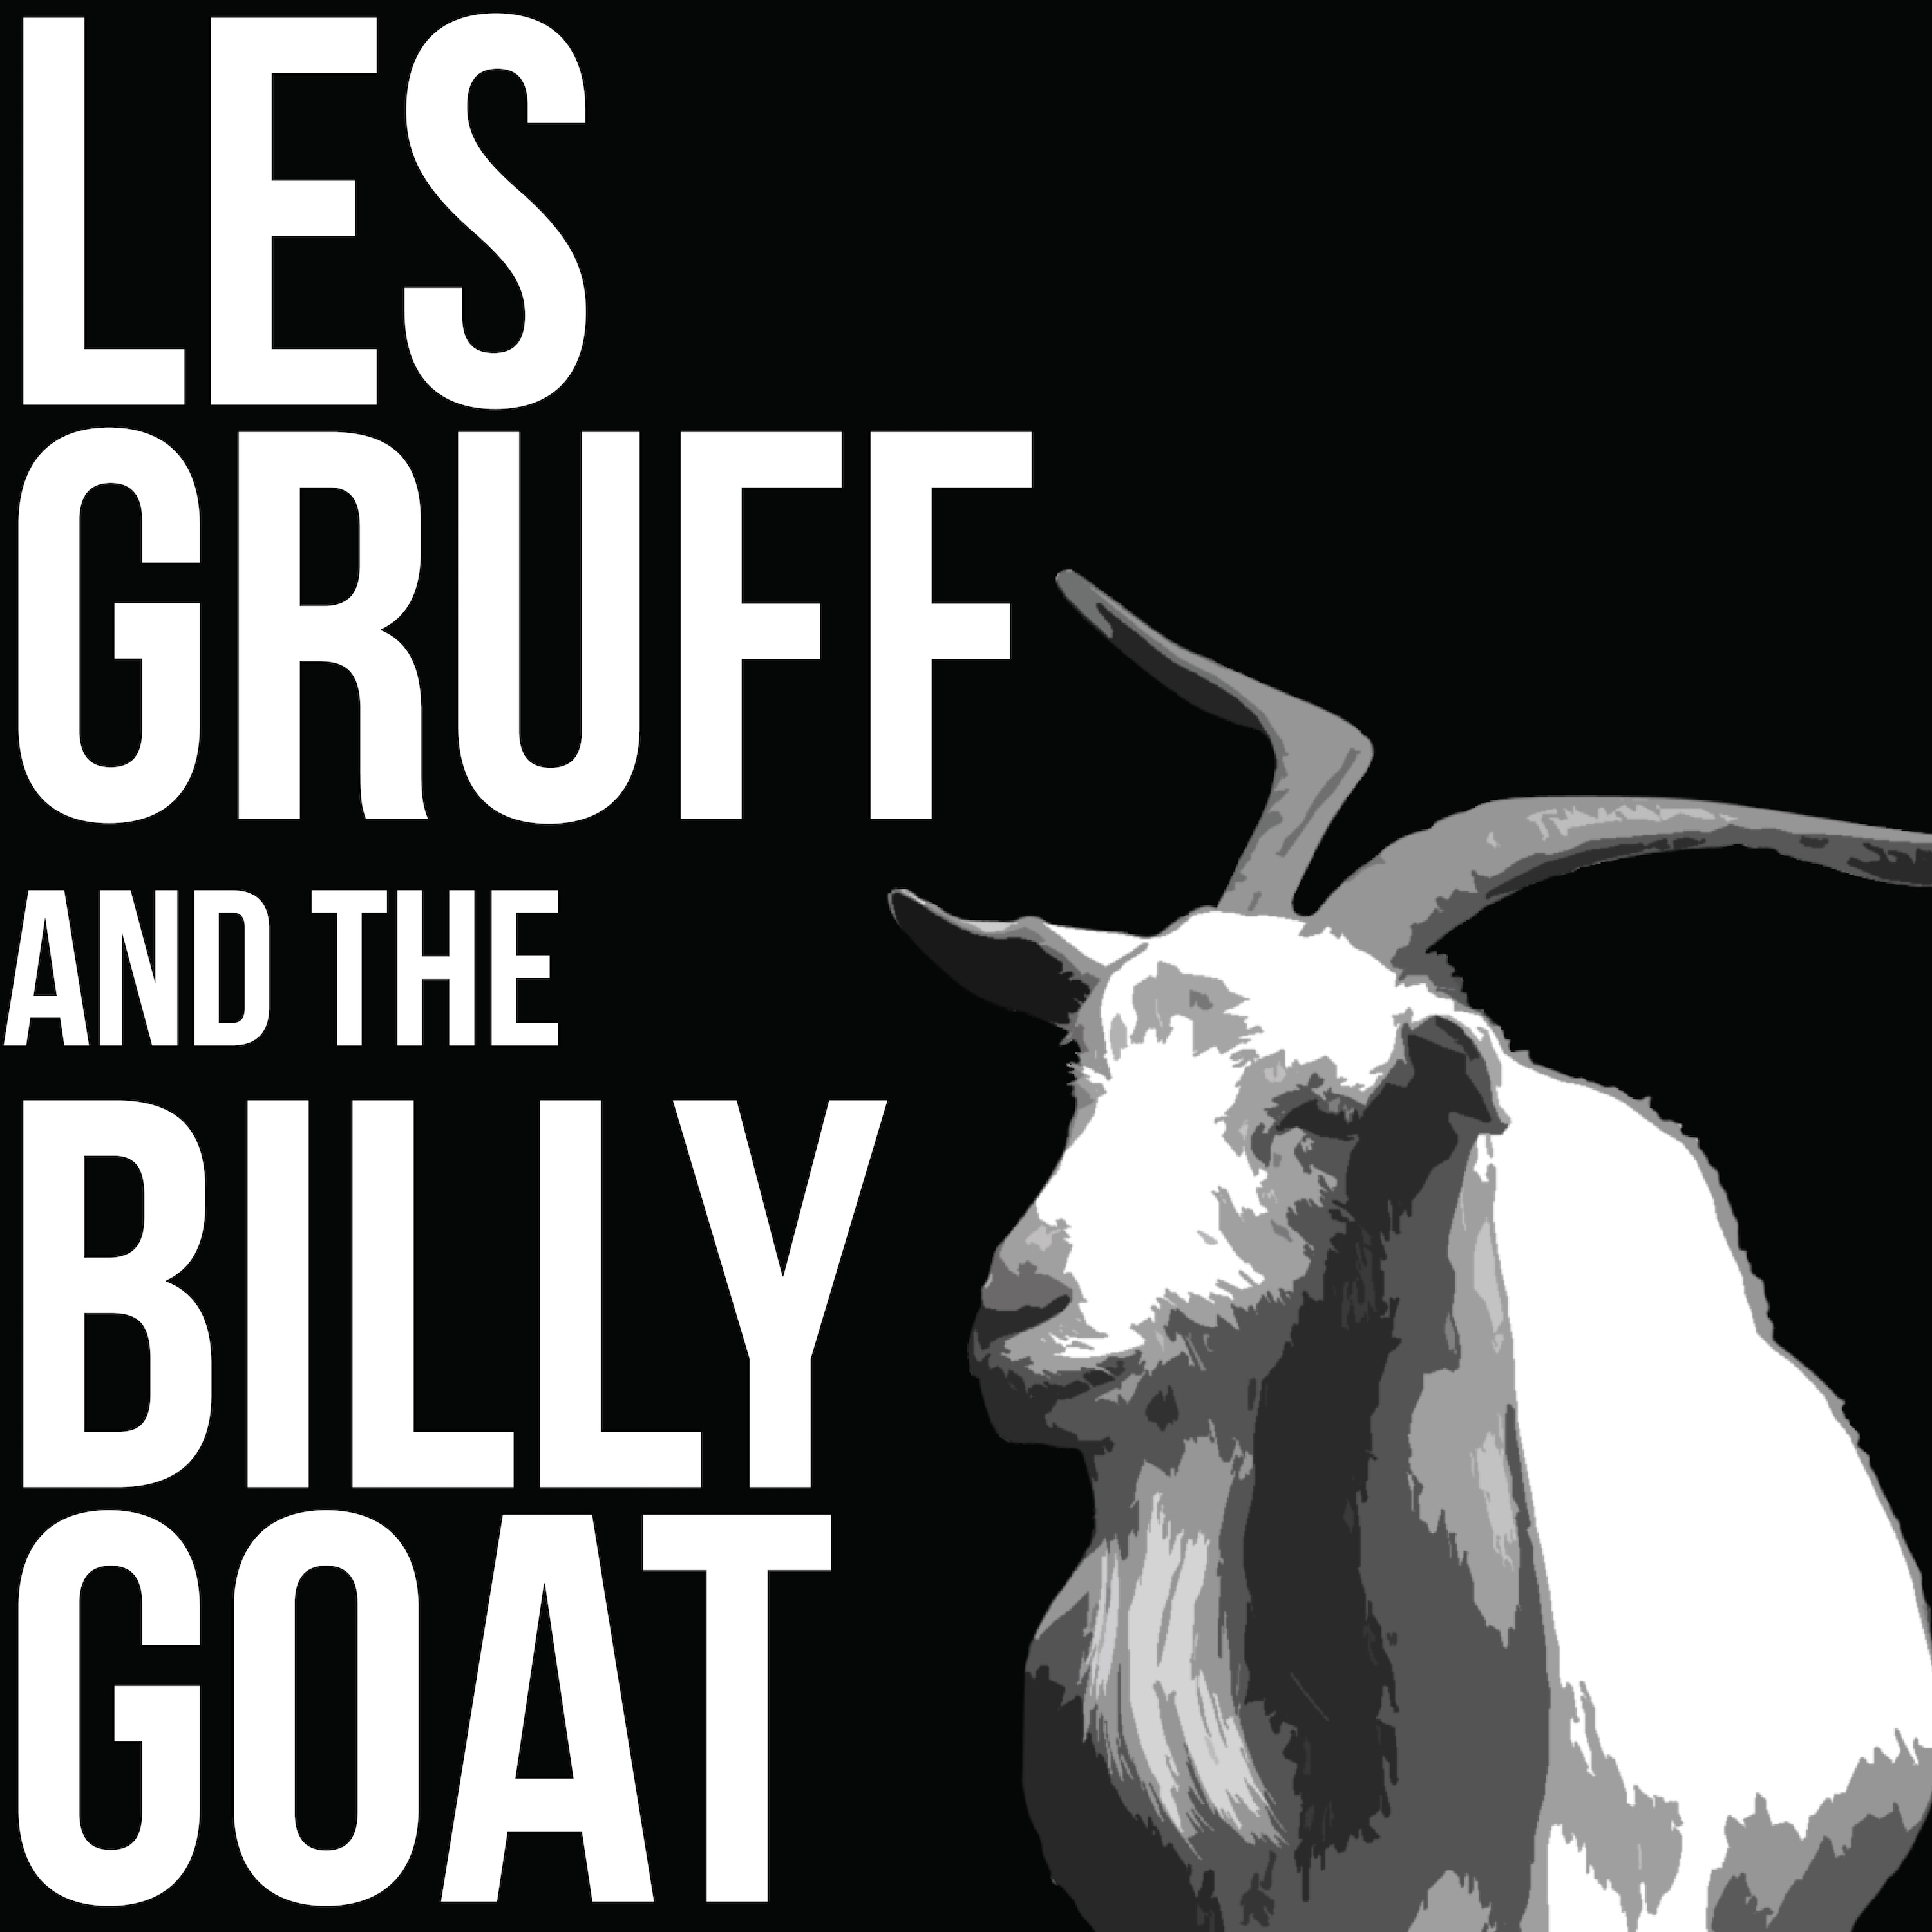 Les Gruff and the Billy Goat Self-Titled CD